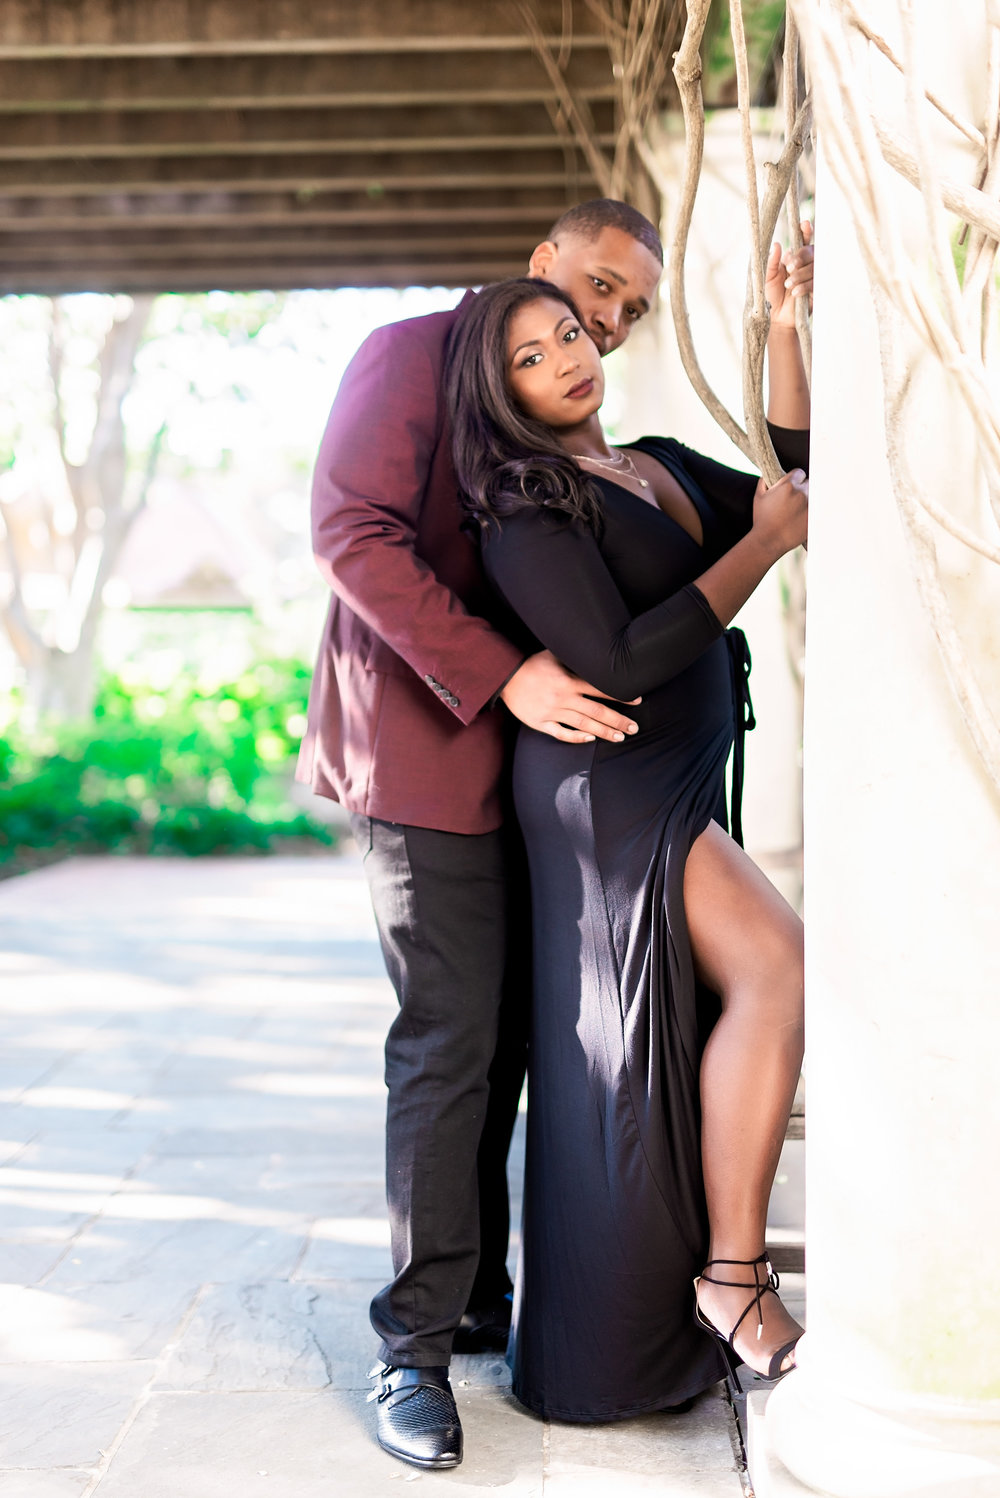 Kevin-Adriana-Pharris-Photography-Engagement-Photoshoot-6.jpg